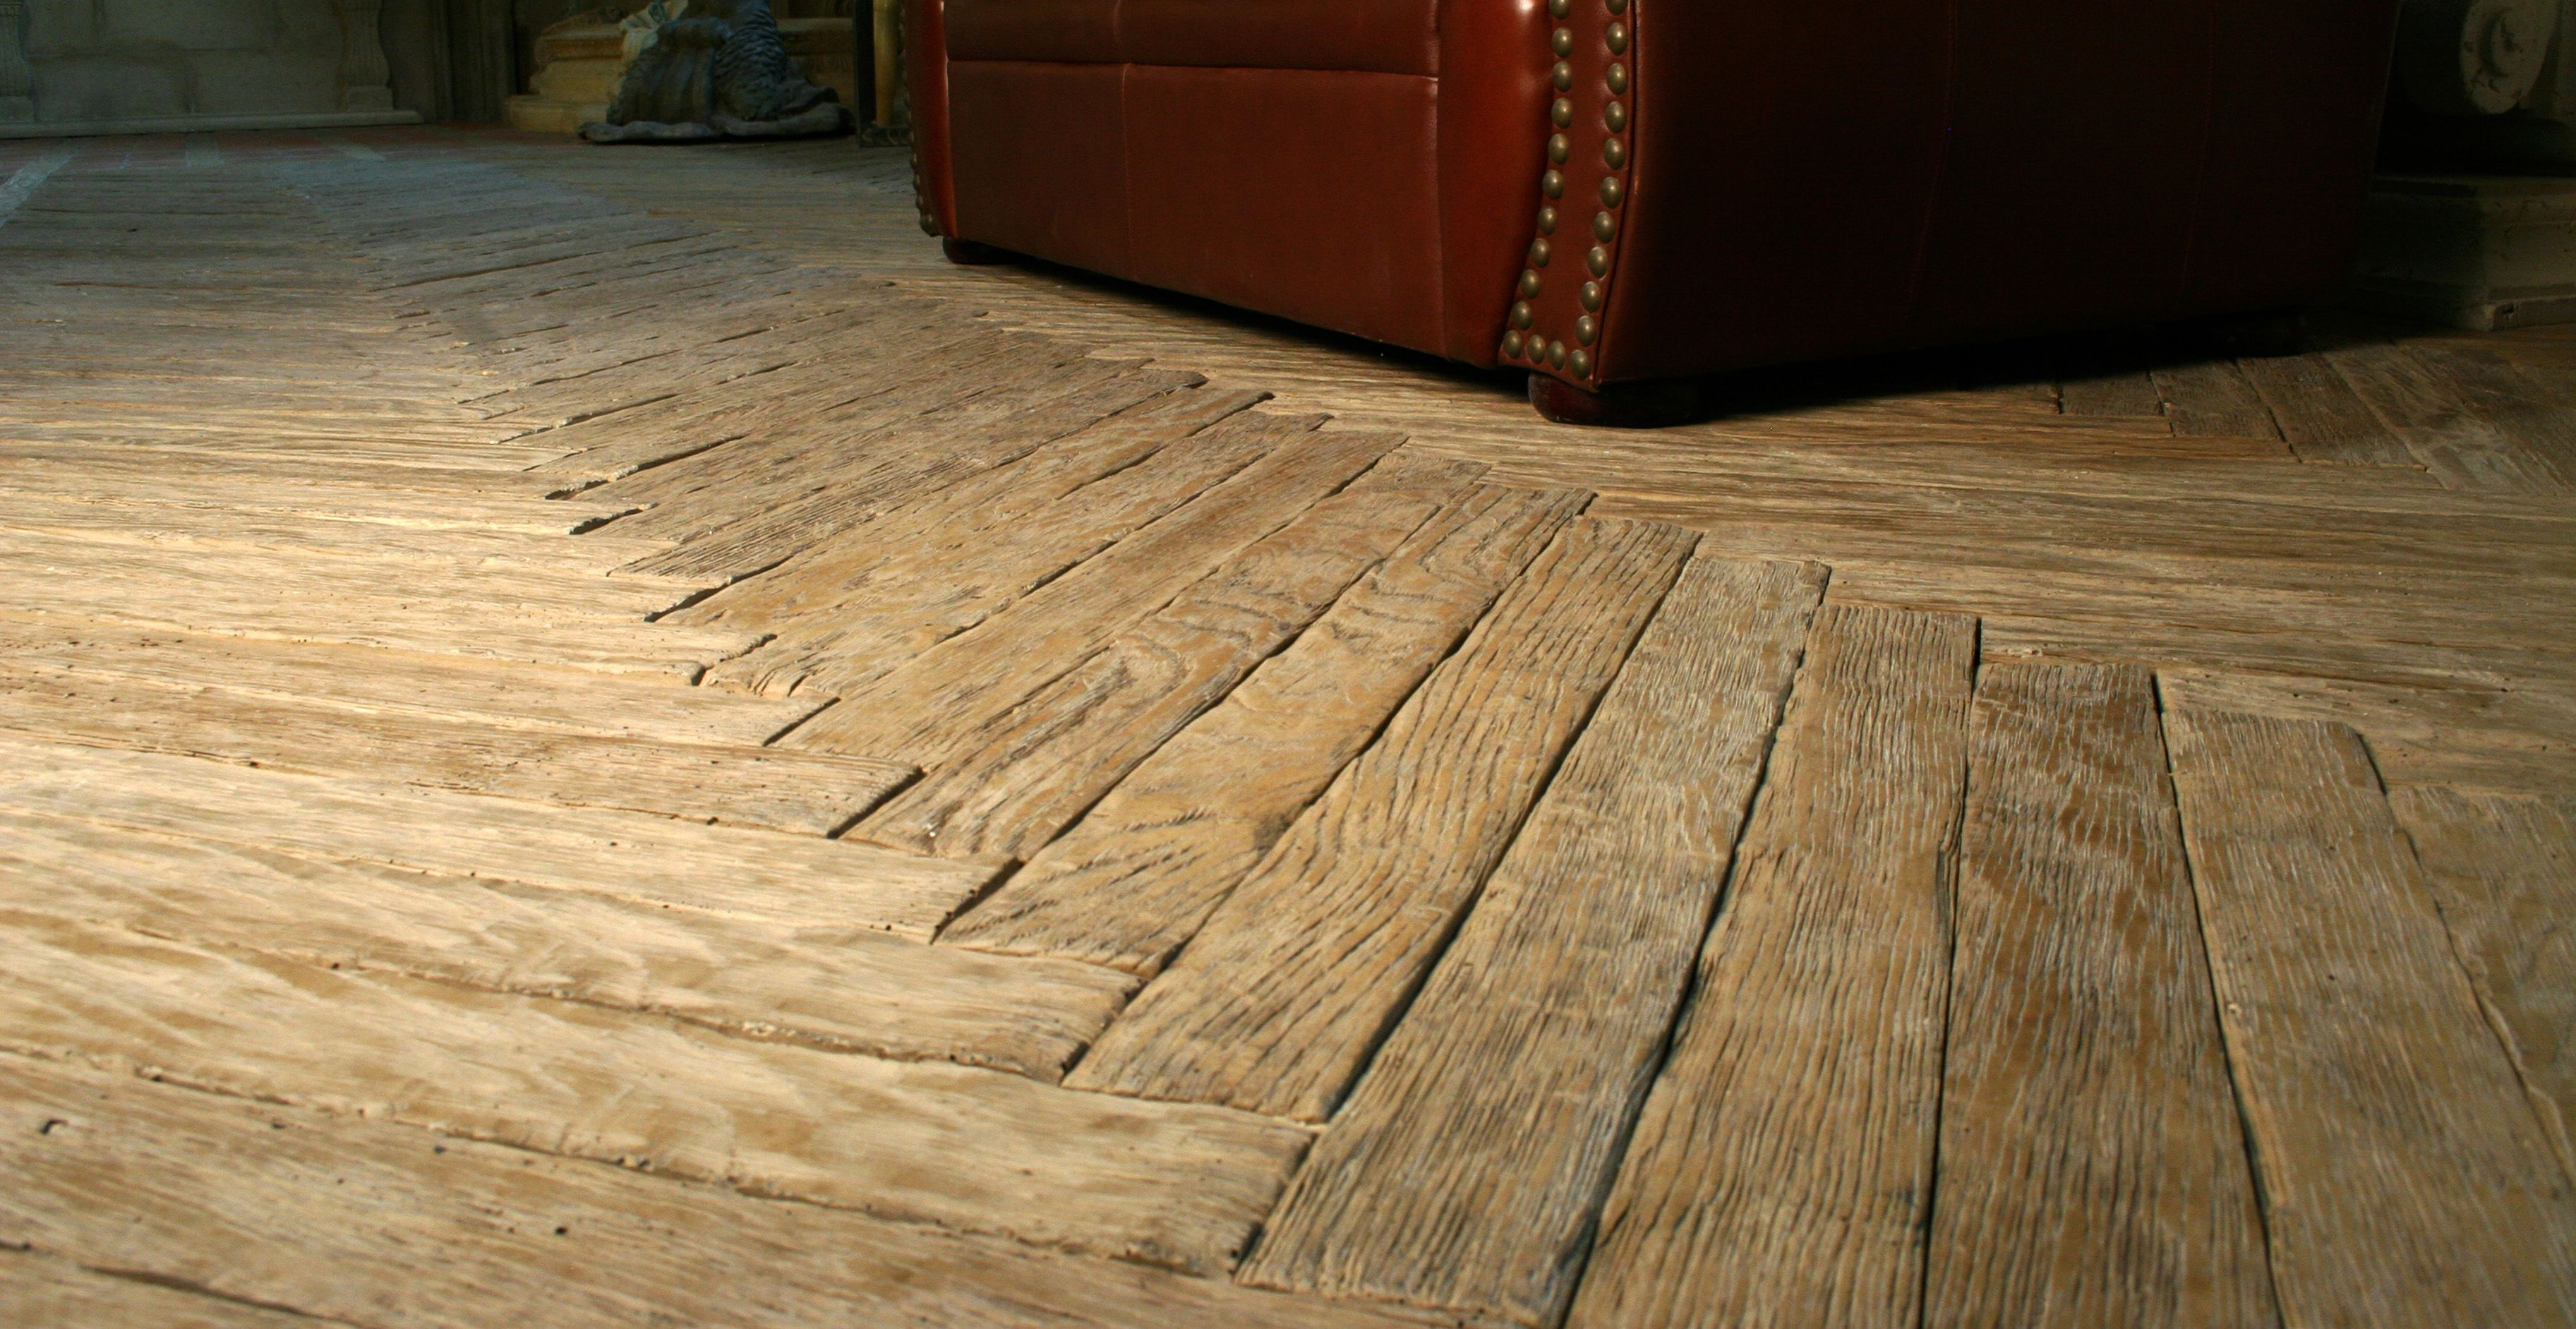 Merveilleux Environmentally Friendly Engineered Wood Flooring